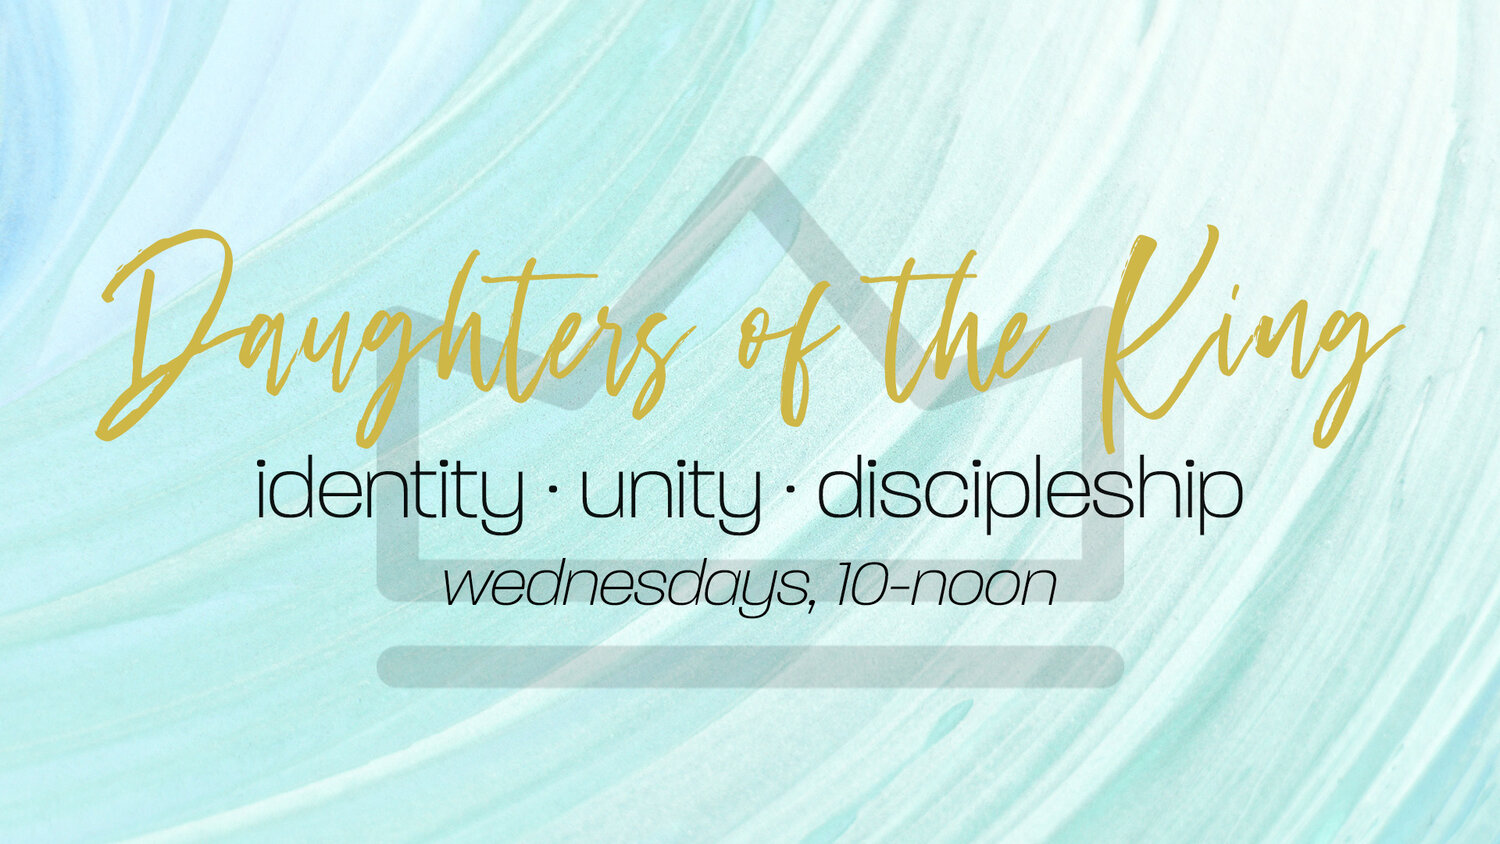 Women's group meets every Wednesday from 10am-noon at the GCC in the Fellowship Hall. This is a safe place to explore our identity in Christ! To examine God's Word and be intentional with applying His scriptures and what we learned from Sunday's message to our daily lives! Please contact Terry Billings for more information.  (530) 320-1138  or  sassytb@sbcglobal.net